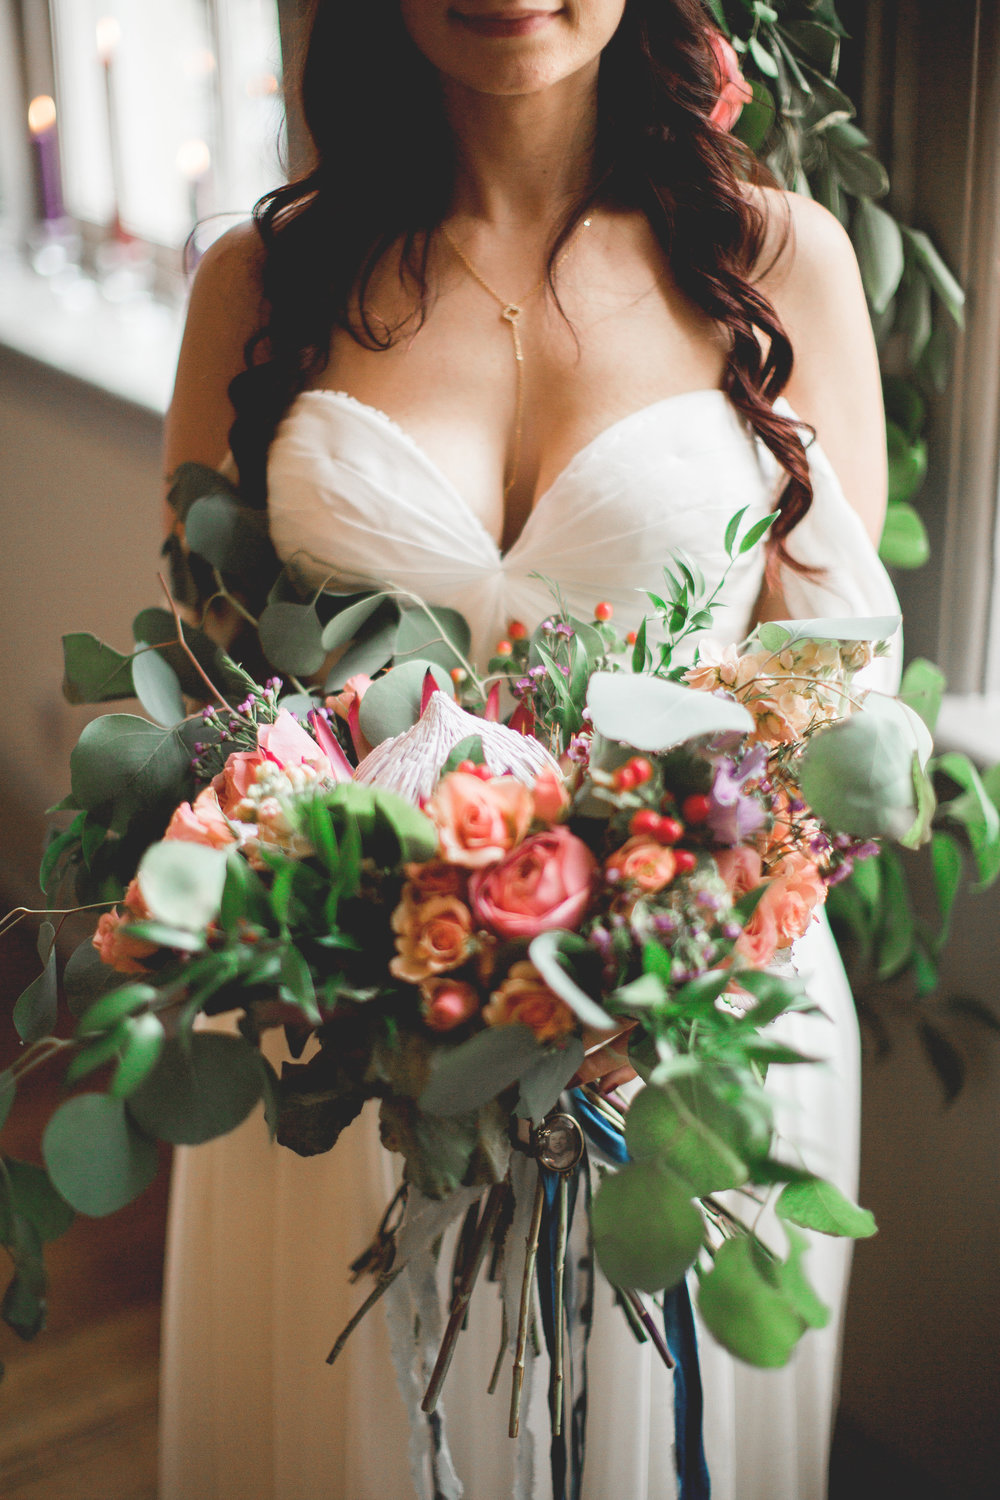 ari-merritt-photography-ivory-and-beau-bridal-boutique-sarah-seven-lafayette-savannah-florist-savannah-floral-designer-10-downing-savannah-wedding-southern-wedding-savannah-bridal-boutique-savannah-wedding-dresses-savannah-wedding-planner-11.jpg